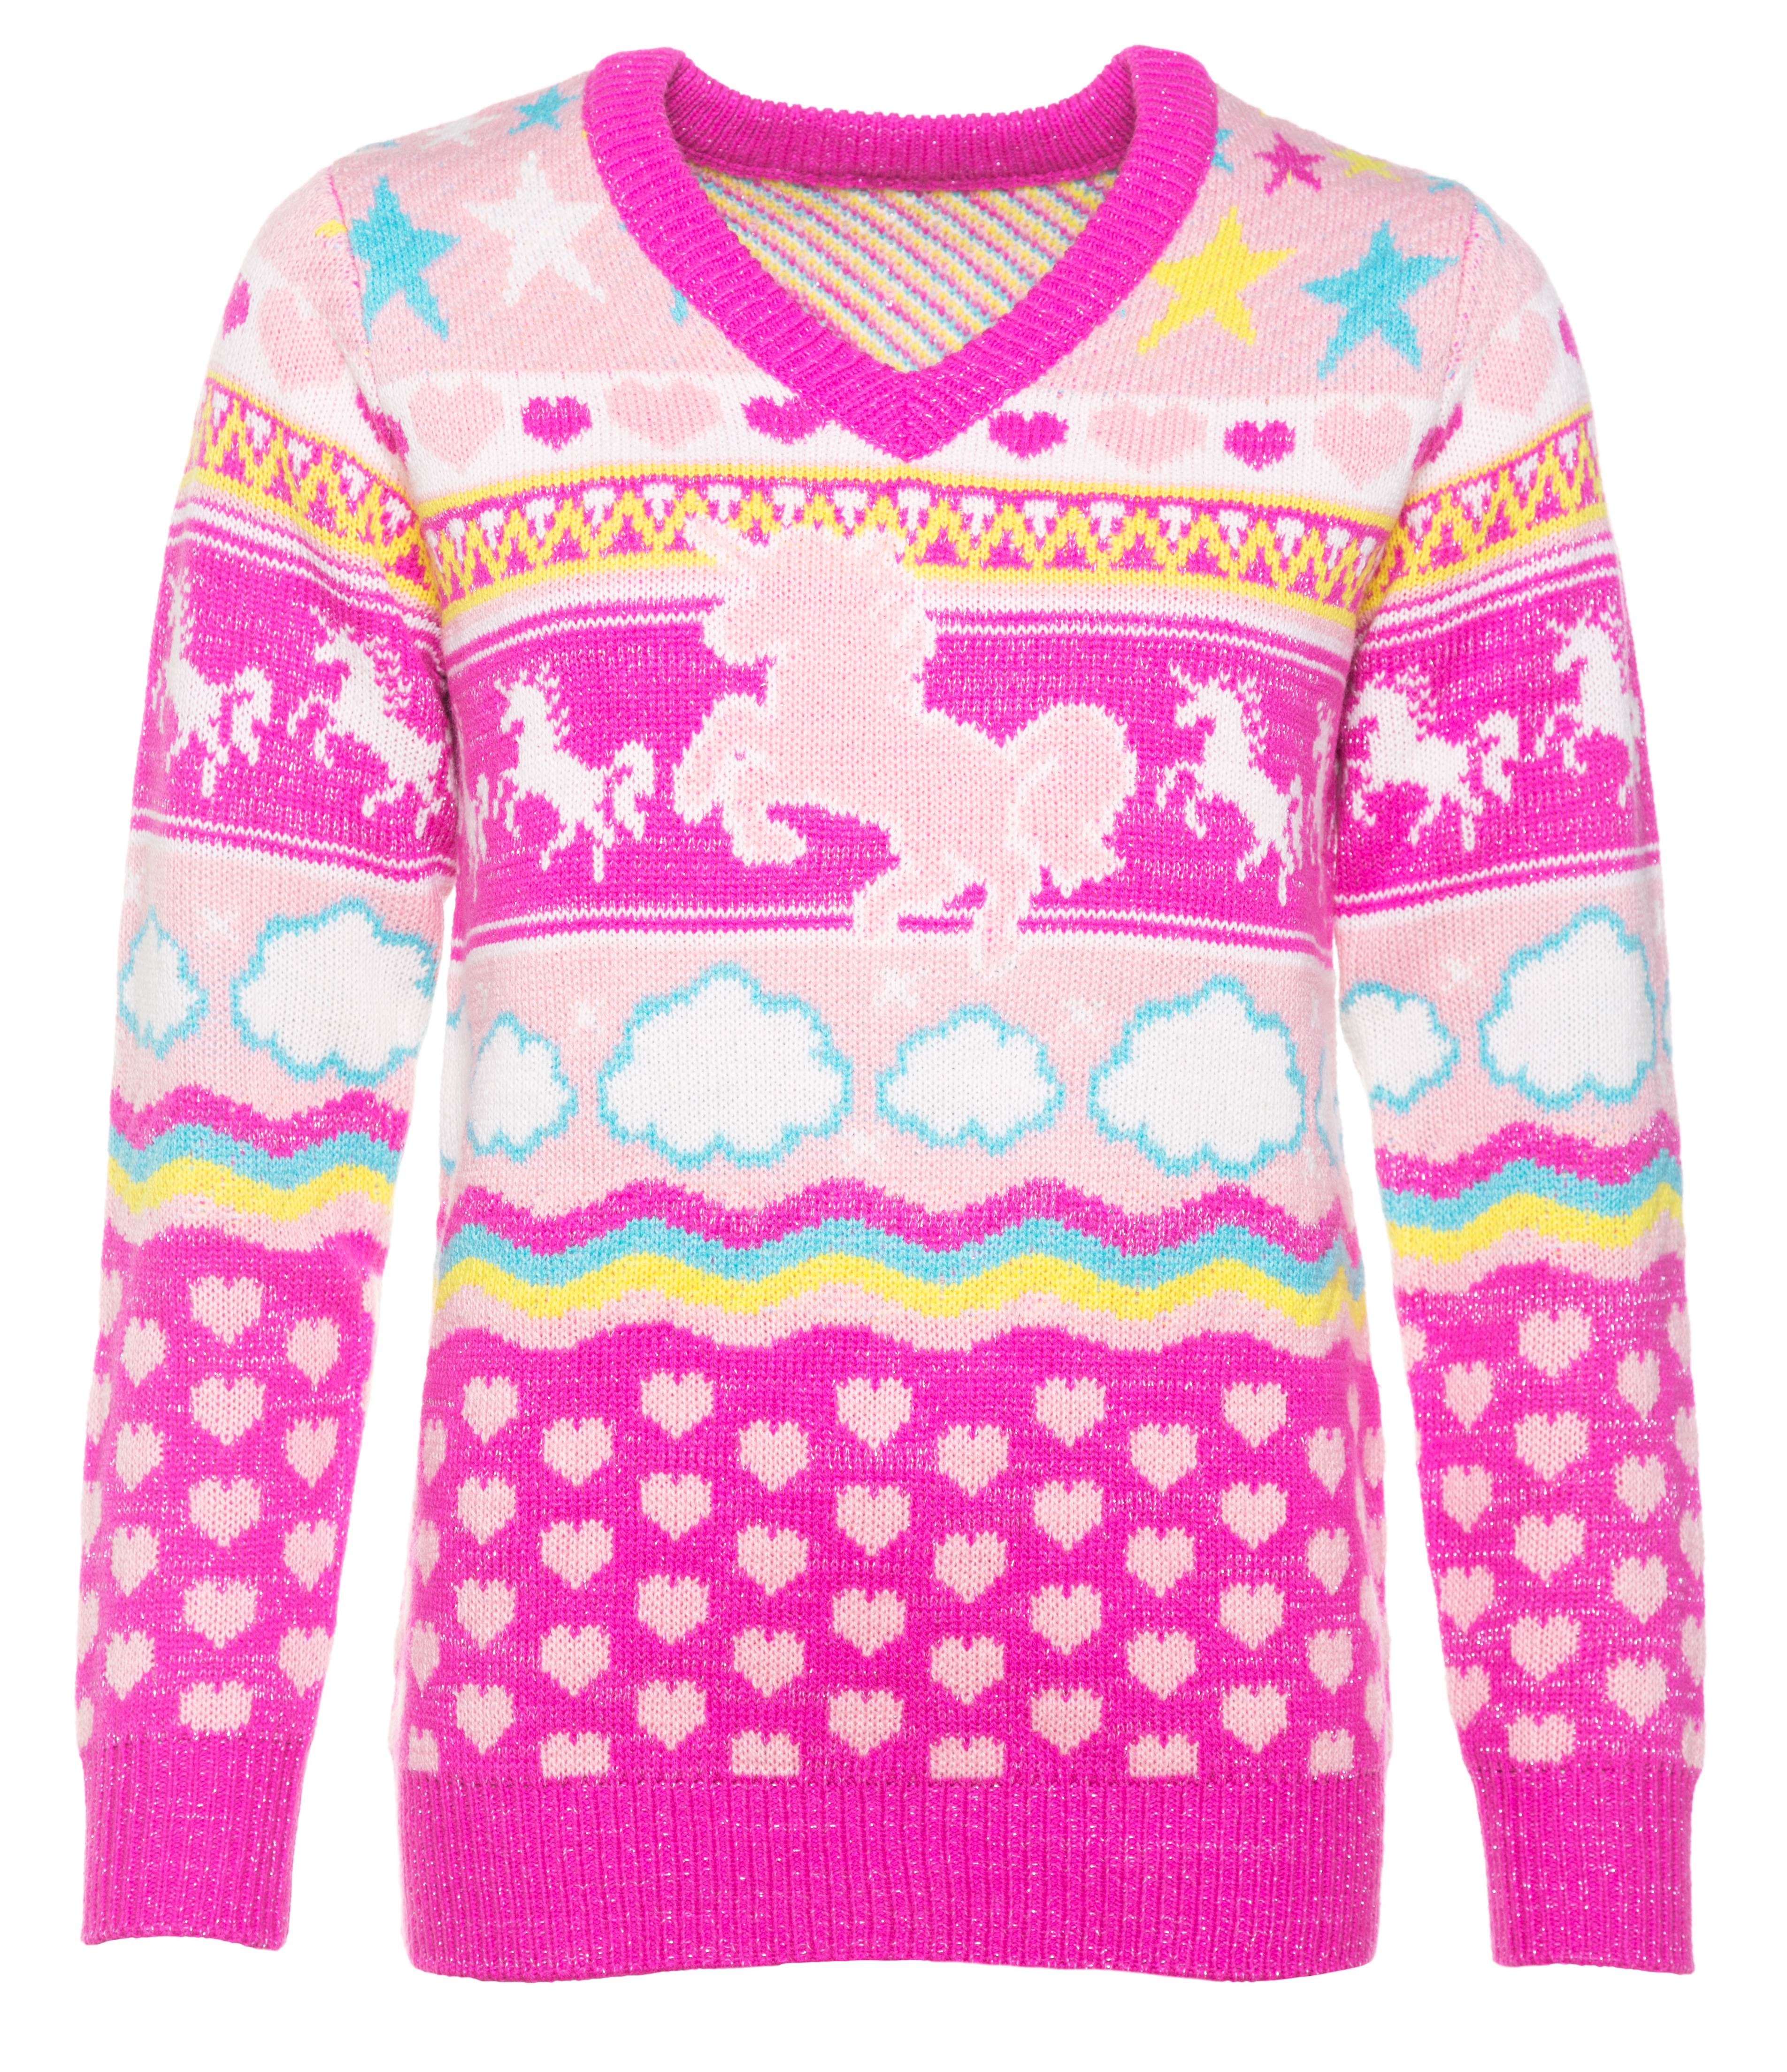 b6a40a664ccd Women s Unicorn Knitted V-Neck Jumper from Cheesy Jumpers - Quality knitted  jumper composed of 100% premium acrylic yarn - A fully knitted jumper  featuring ...